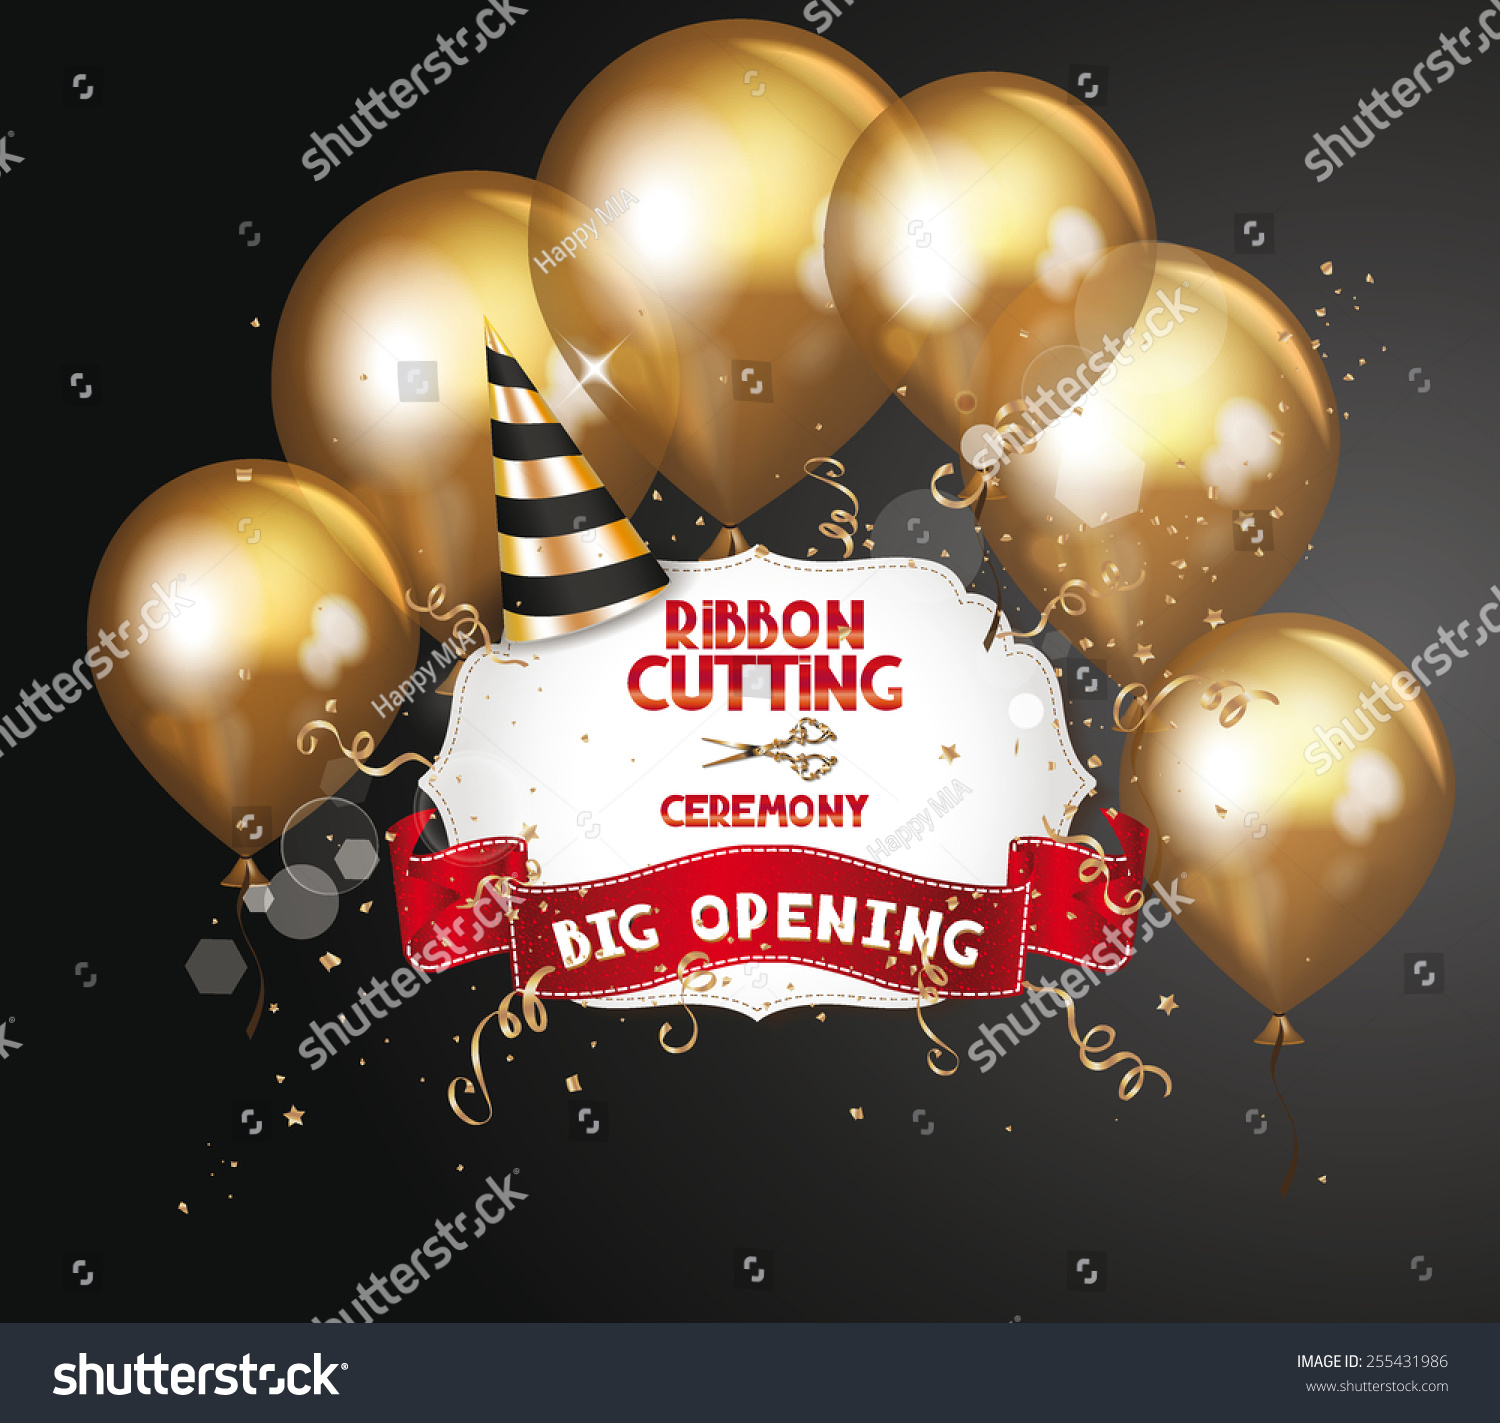 ribbon cutting ceremony invitation card with gold air balloons